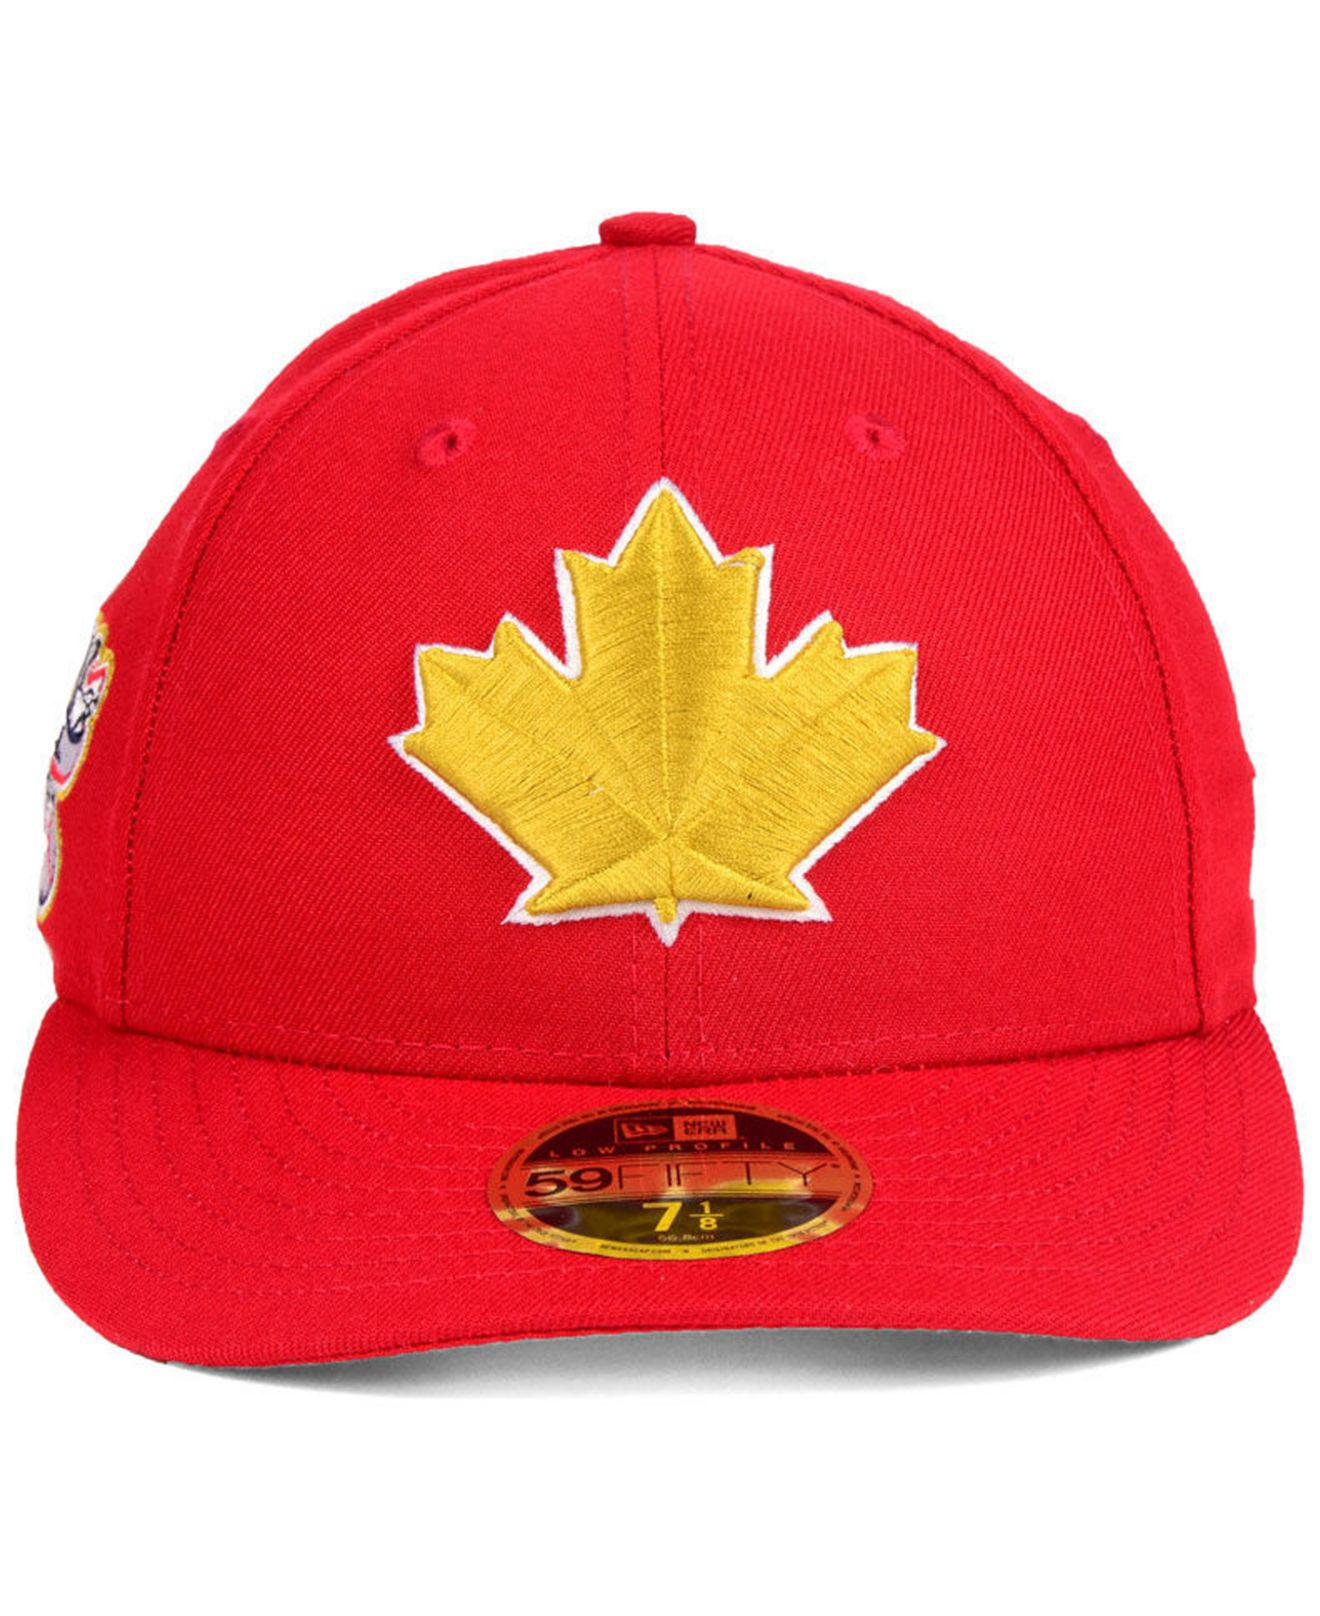 85d8a0d809b Lyst - KTZ Toronto Blue Jays Stars And Stripes Low Profile 59fifty Fitted  Cap 2018 in Red for Men